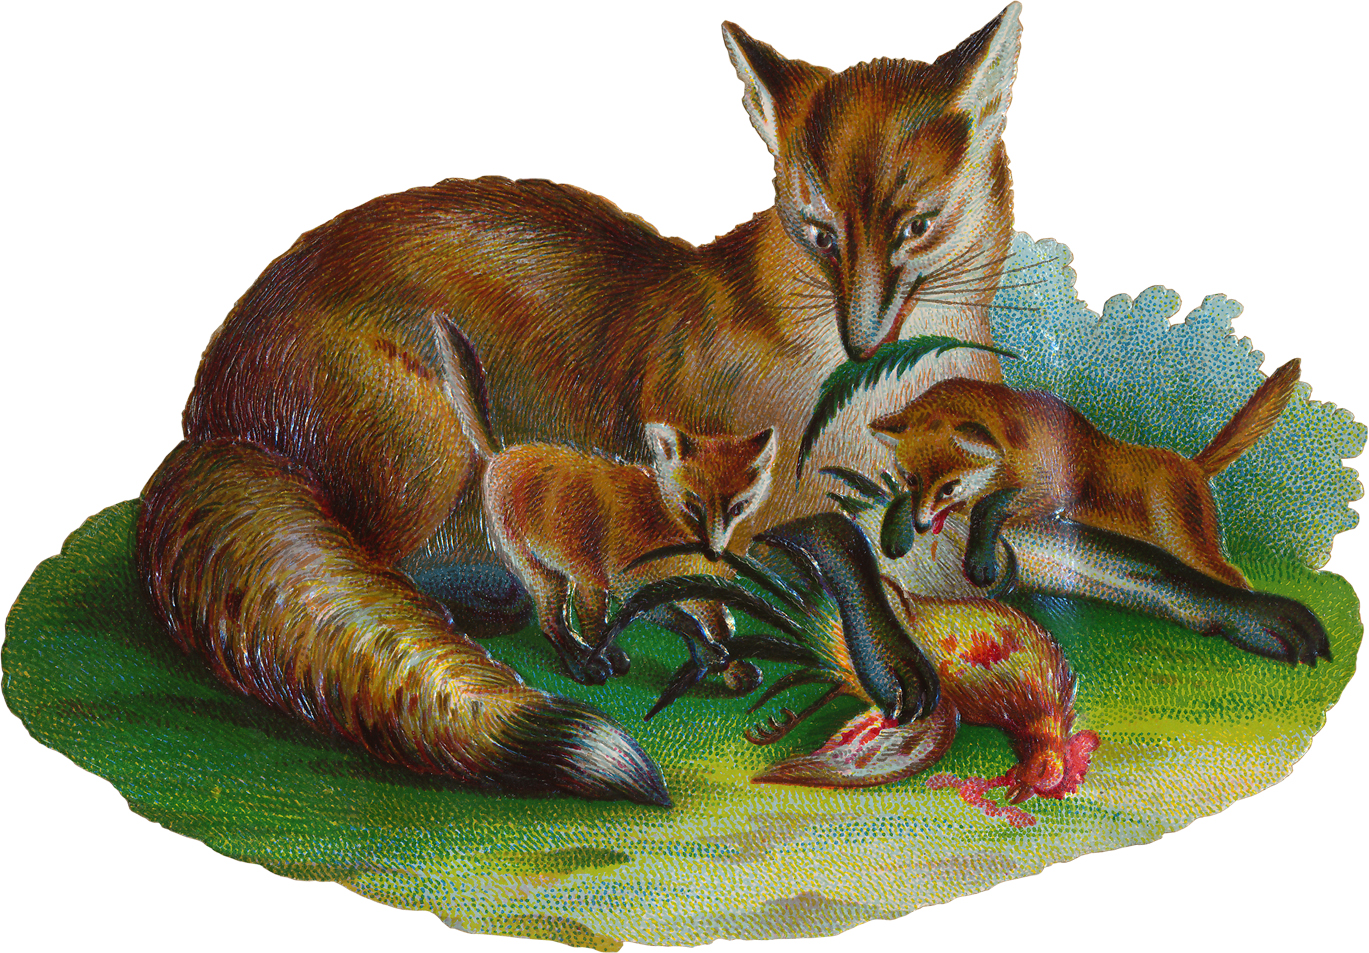 http://www.co-opones.to/male/viewer/images/Bh-Foxportrait.jpg